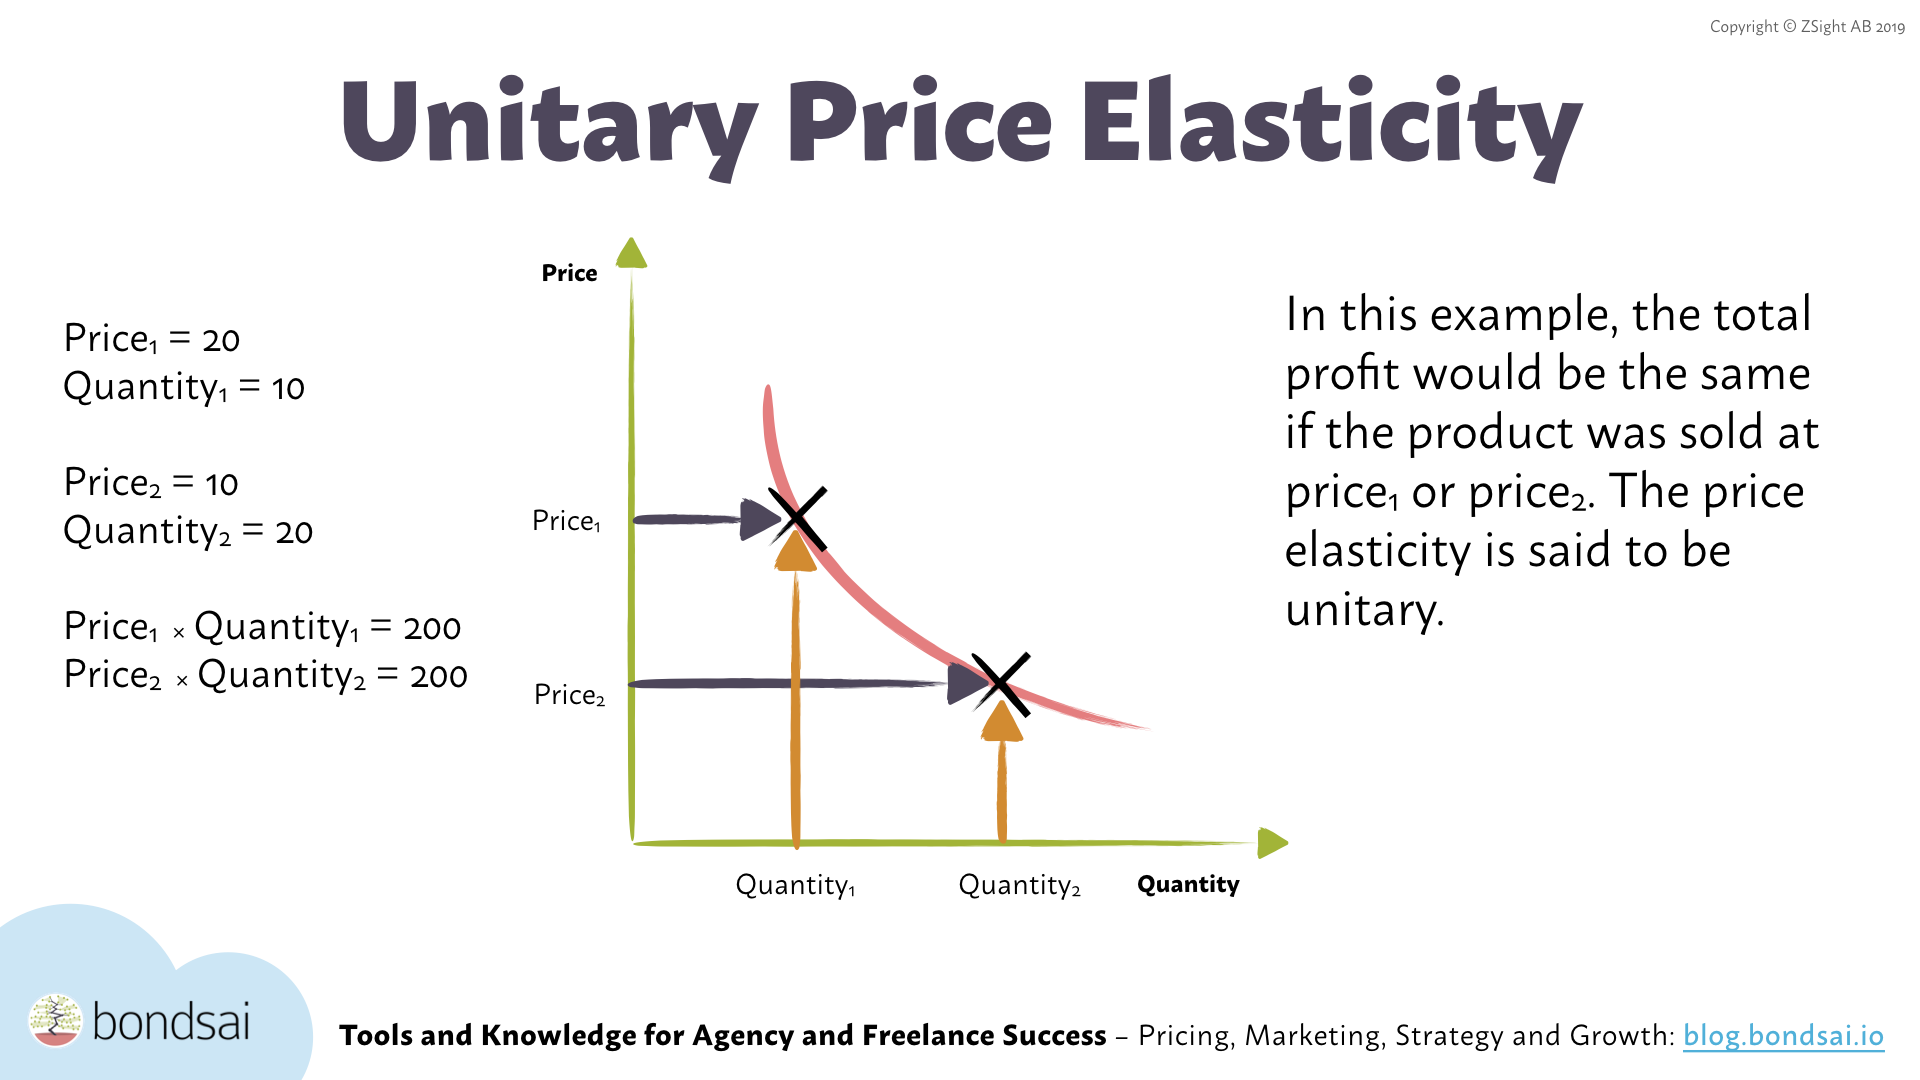 Price elasticity of demand (PED) visualizes the quantity sold of a good at a certain price point.